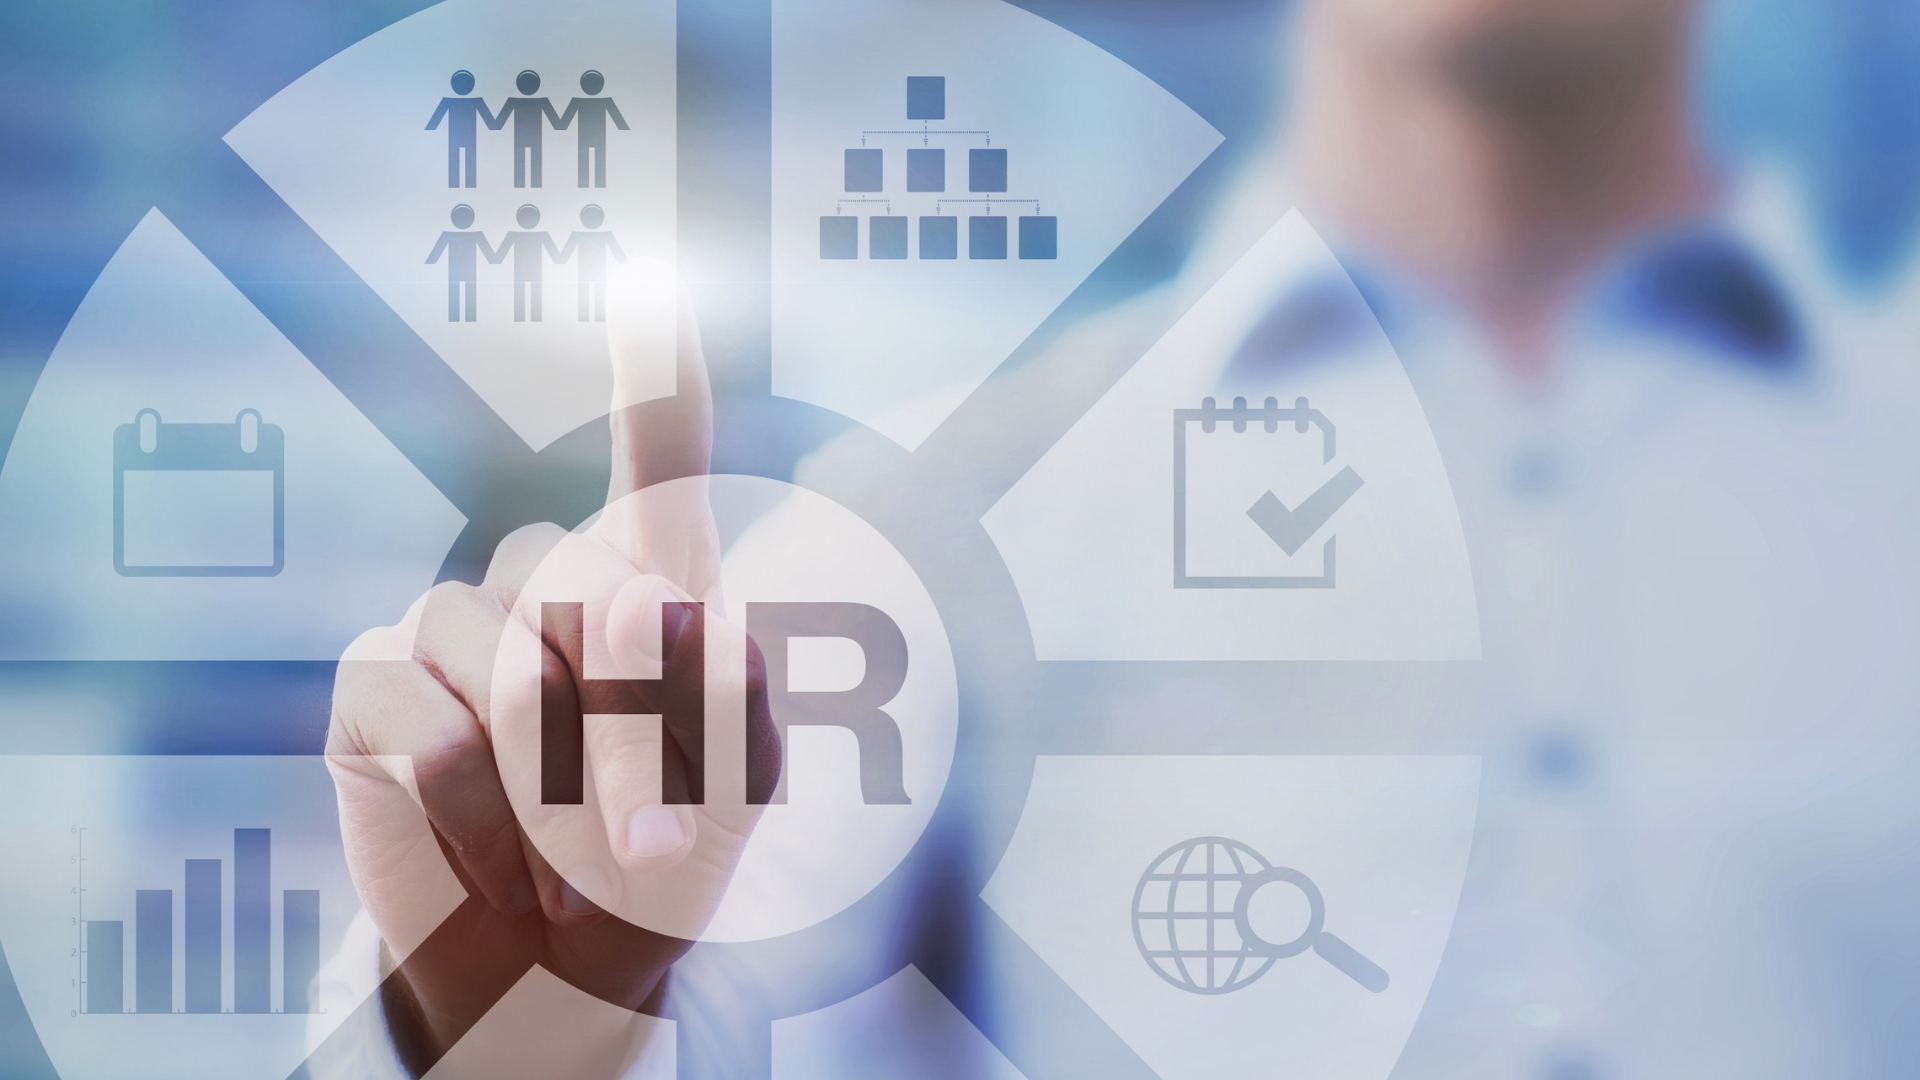 Title image - Why an HR application is so important for your organization